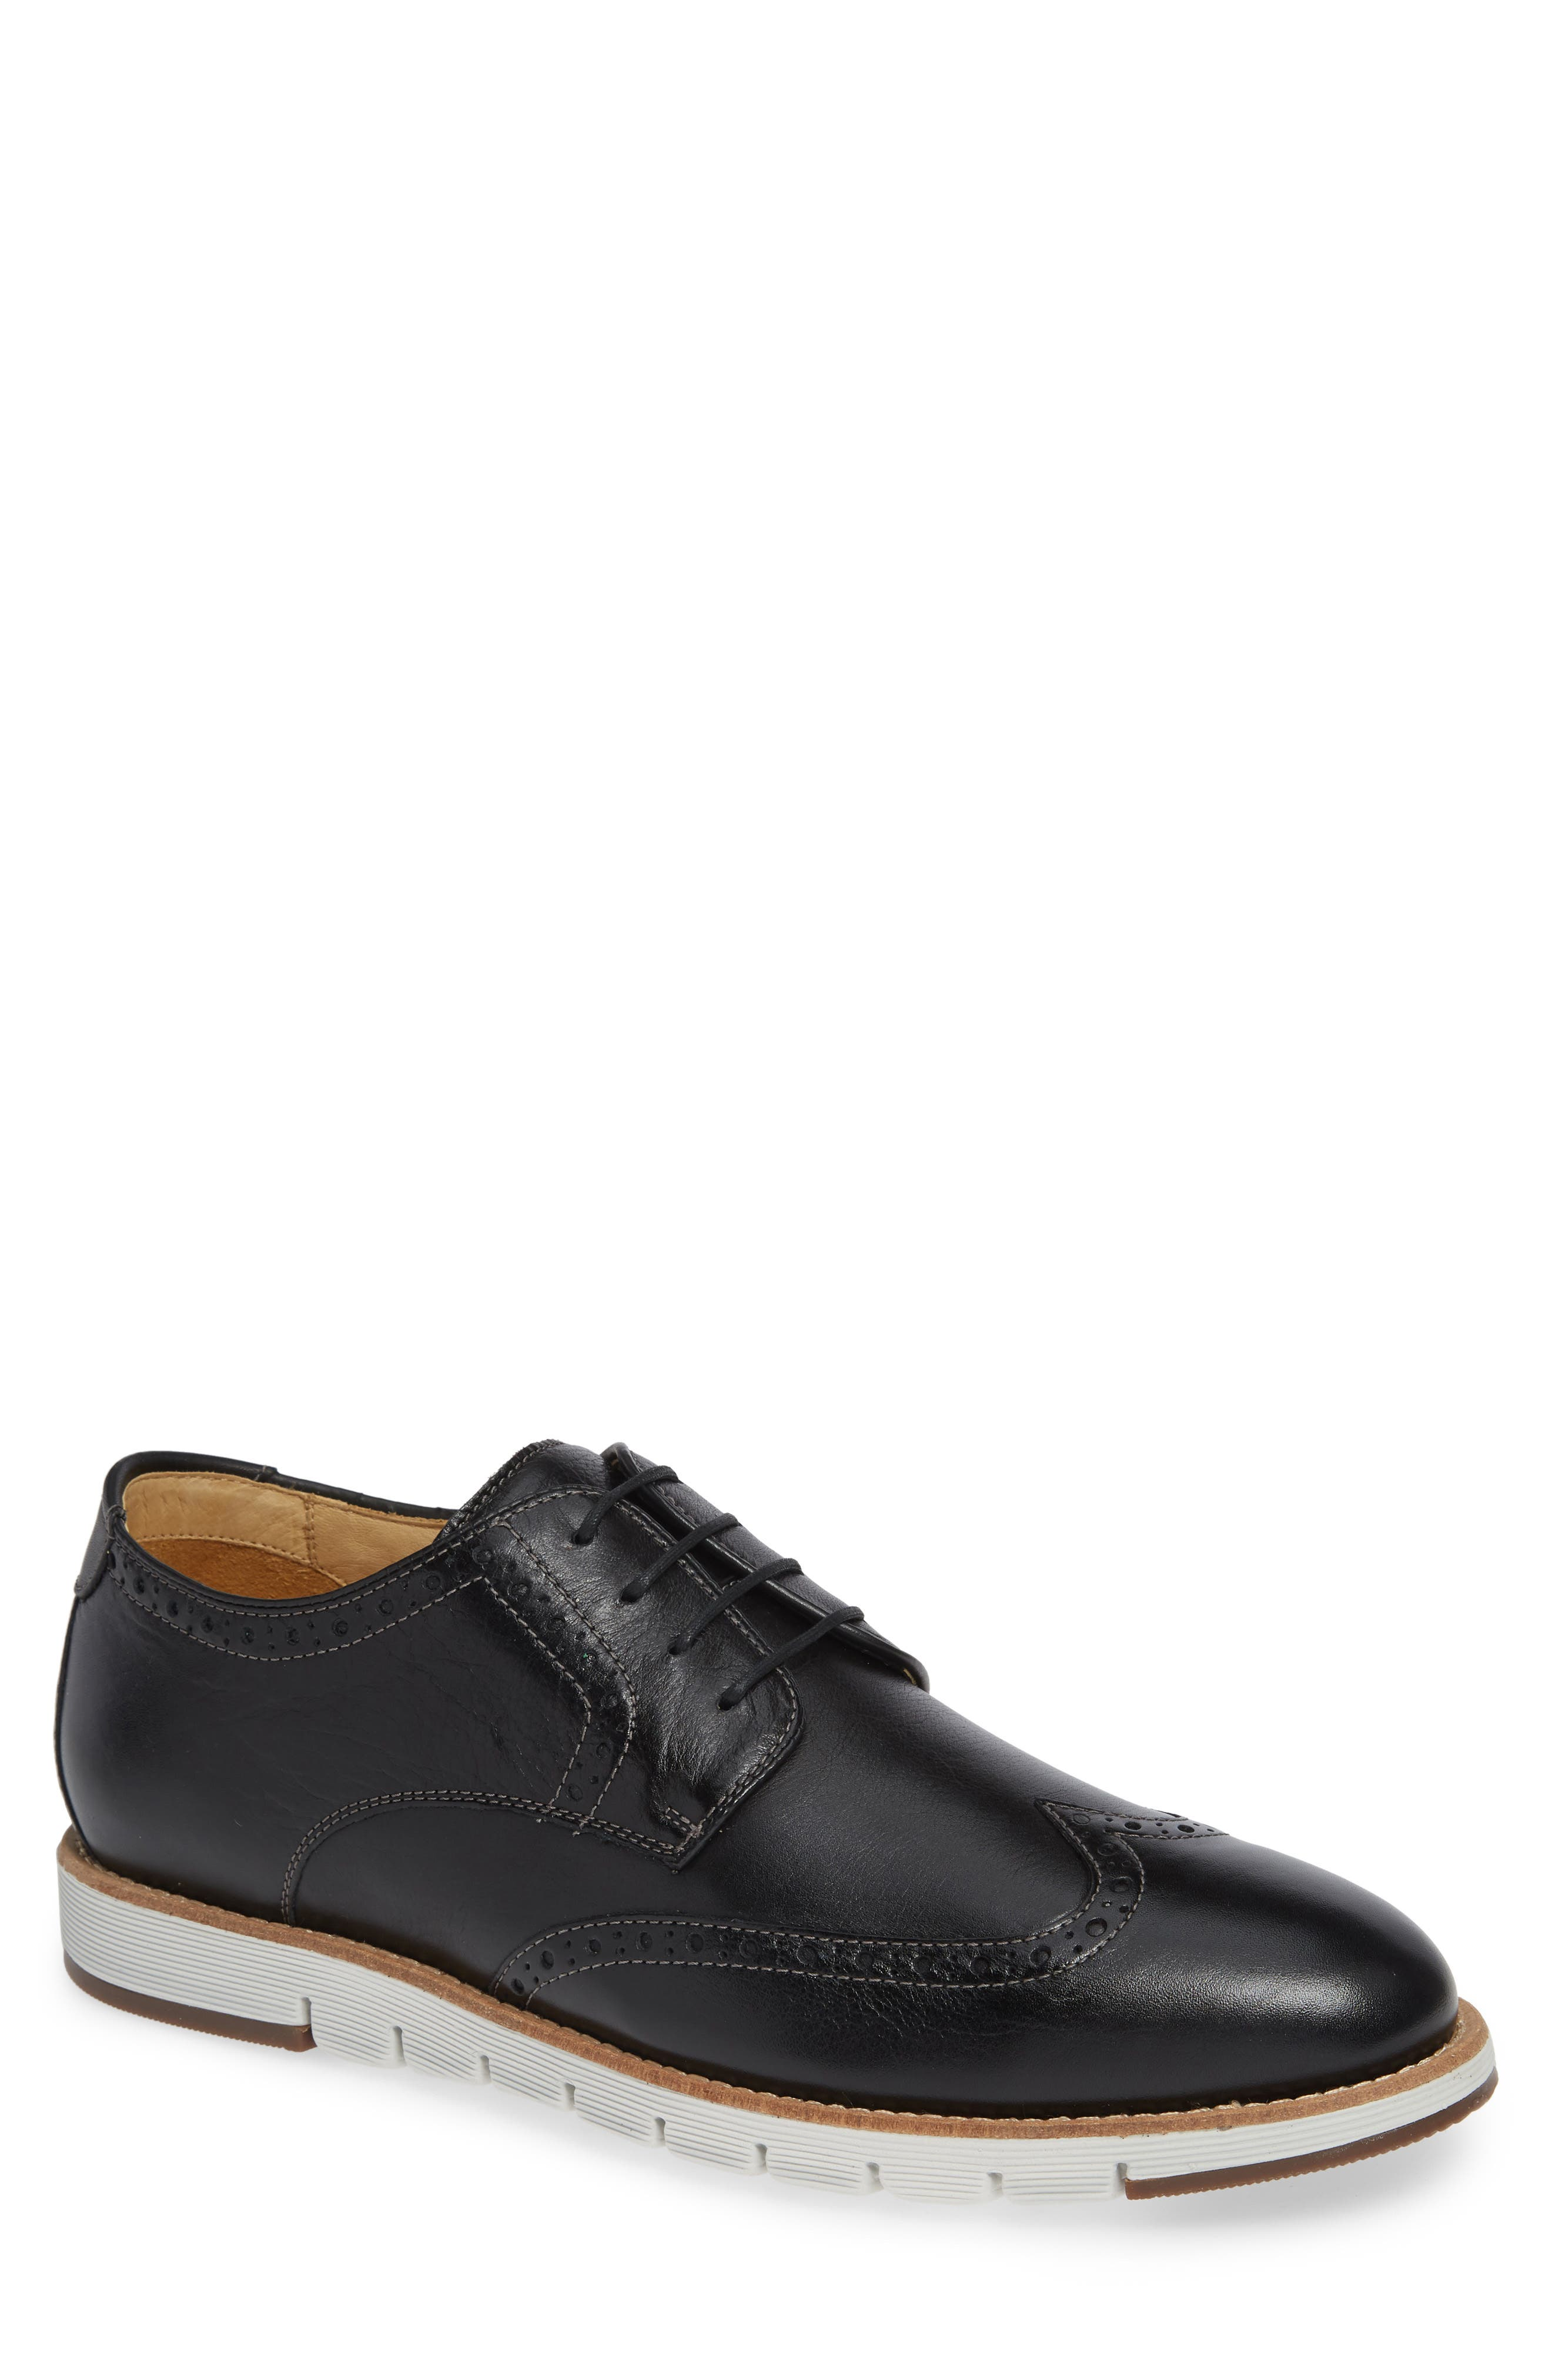 Martell Wingtip,                         Main,                         color, BLACK LEATHER